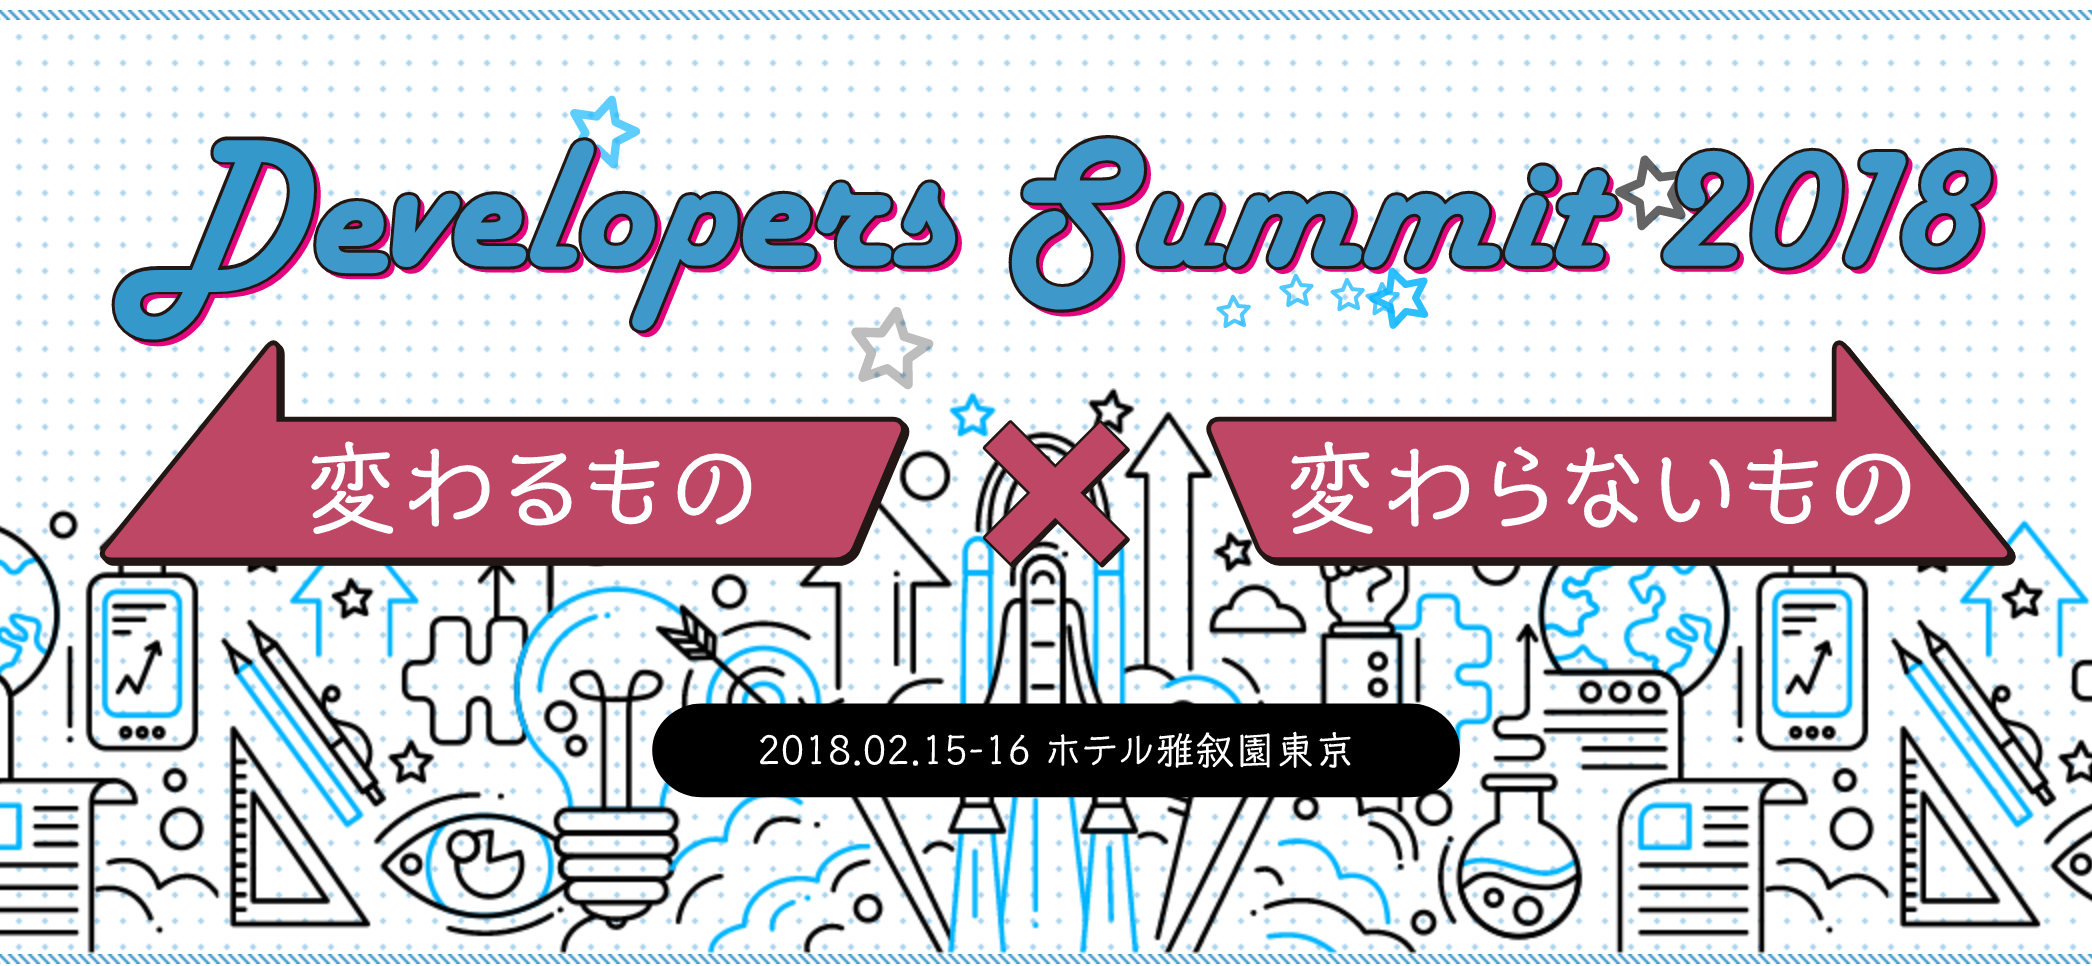 Developer Summit 2018